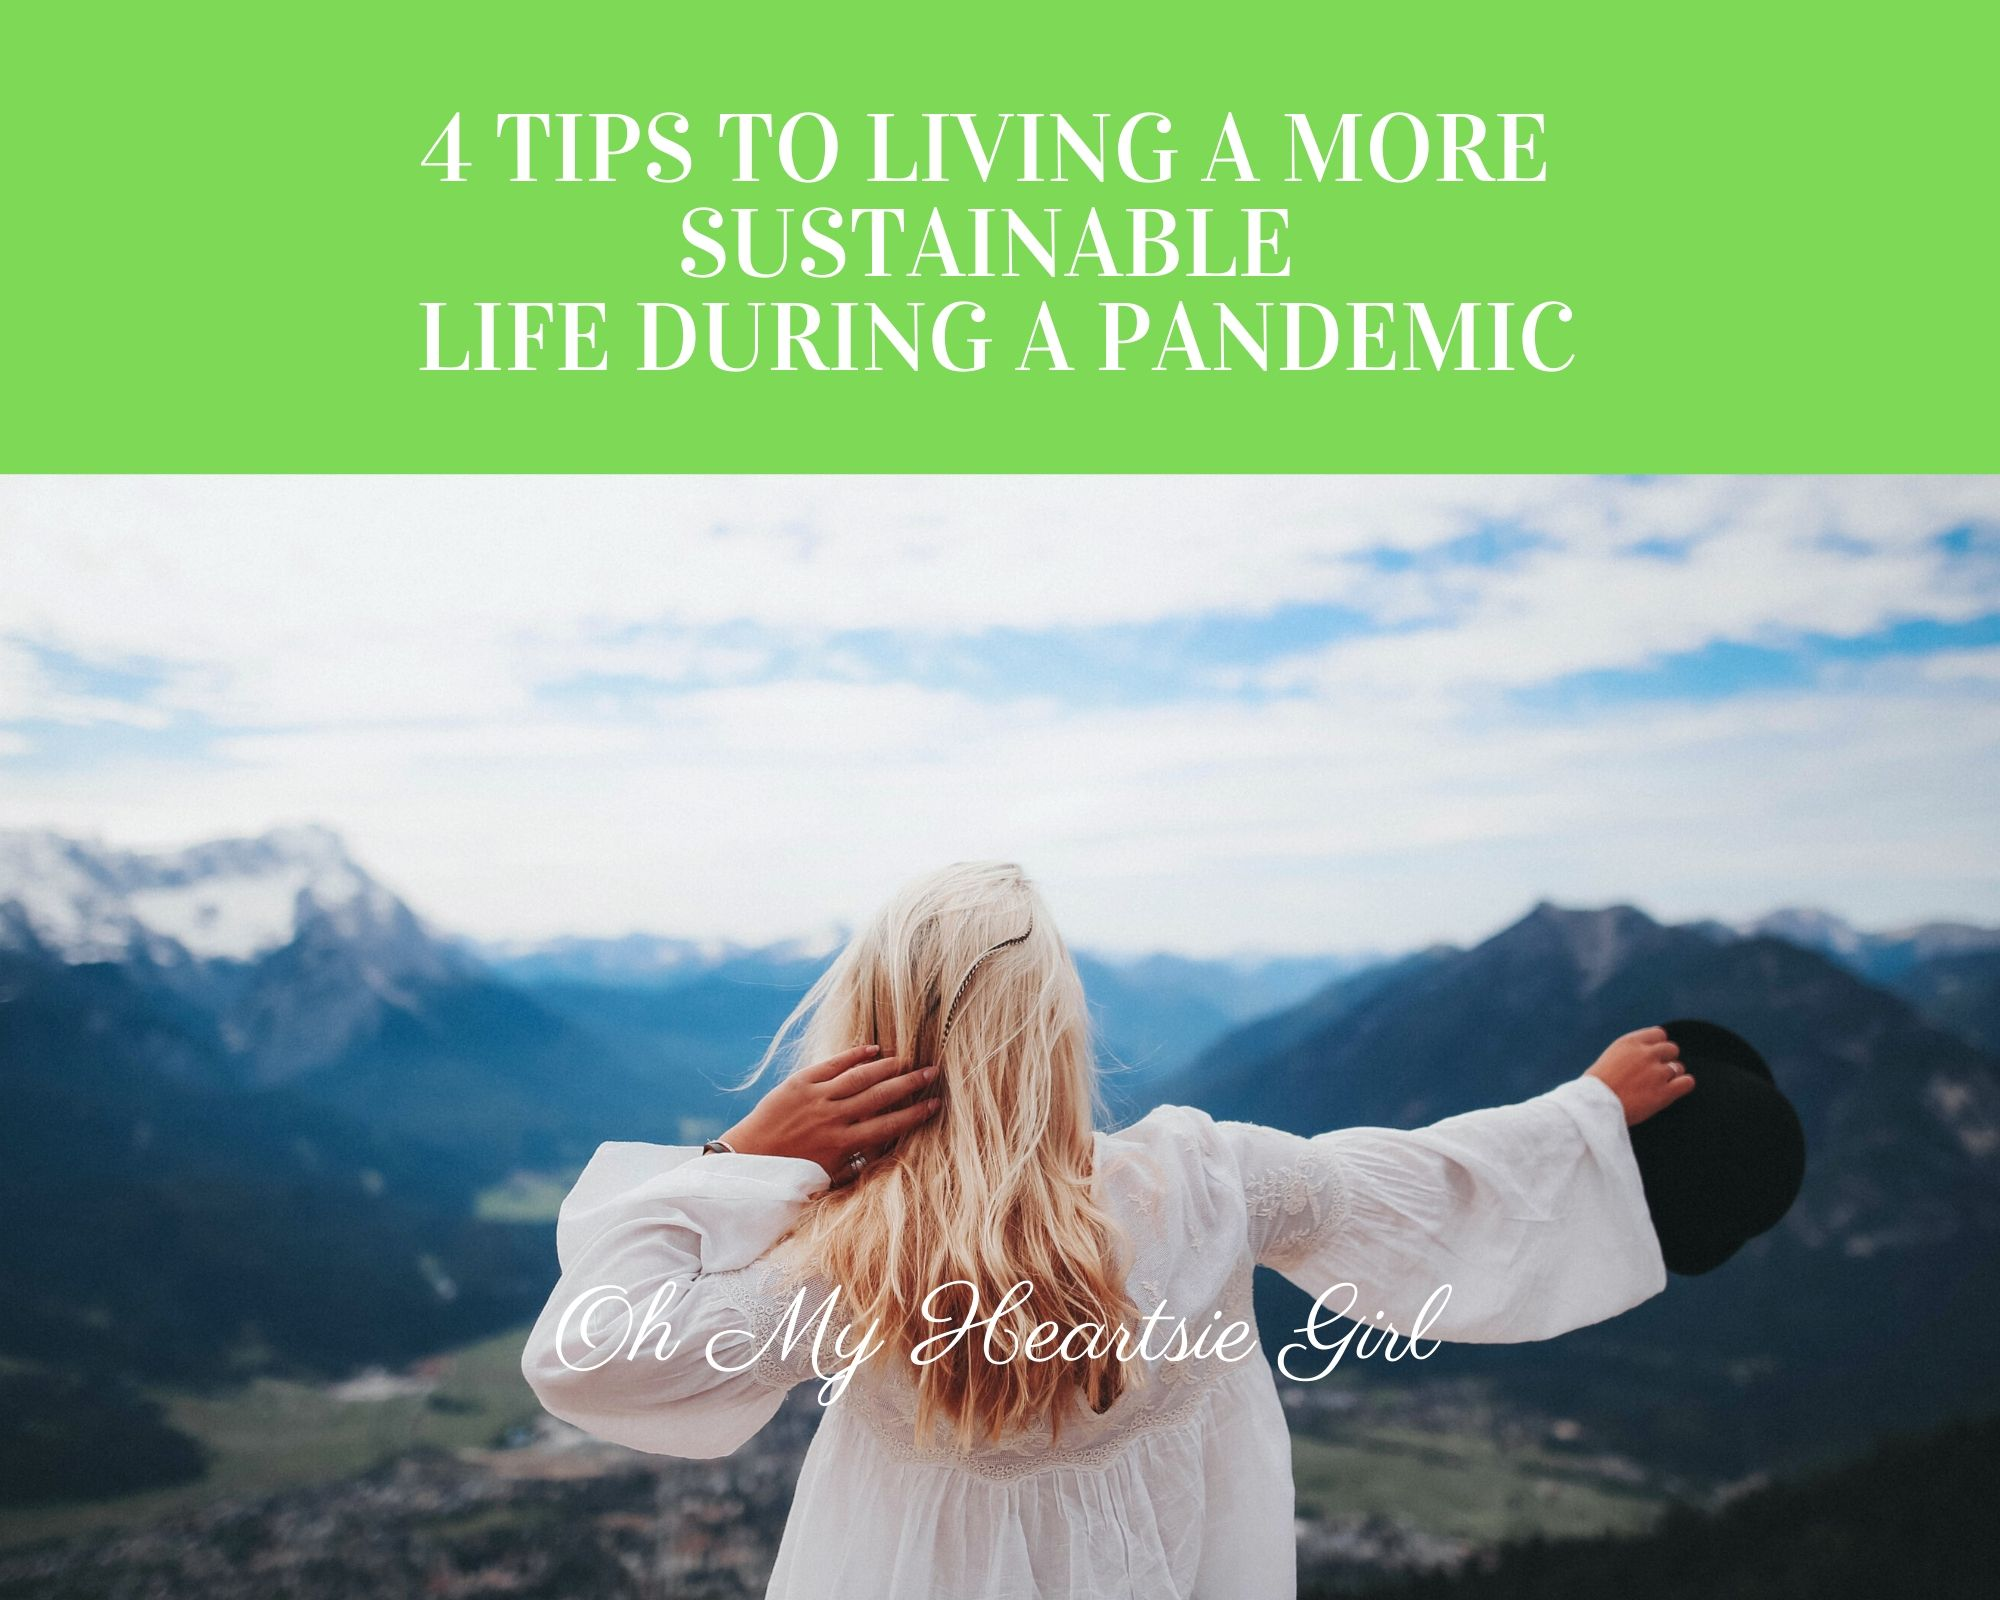 4-Tips-to-Living-a-More-Sustainable-Life-During-a-Pandemic